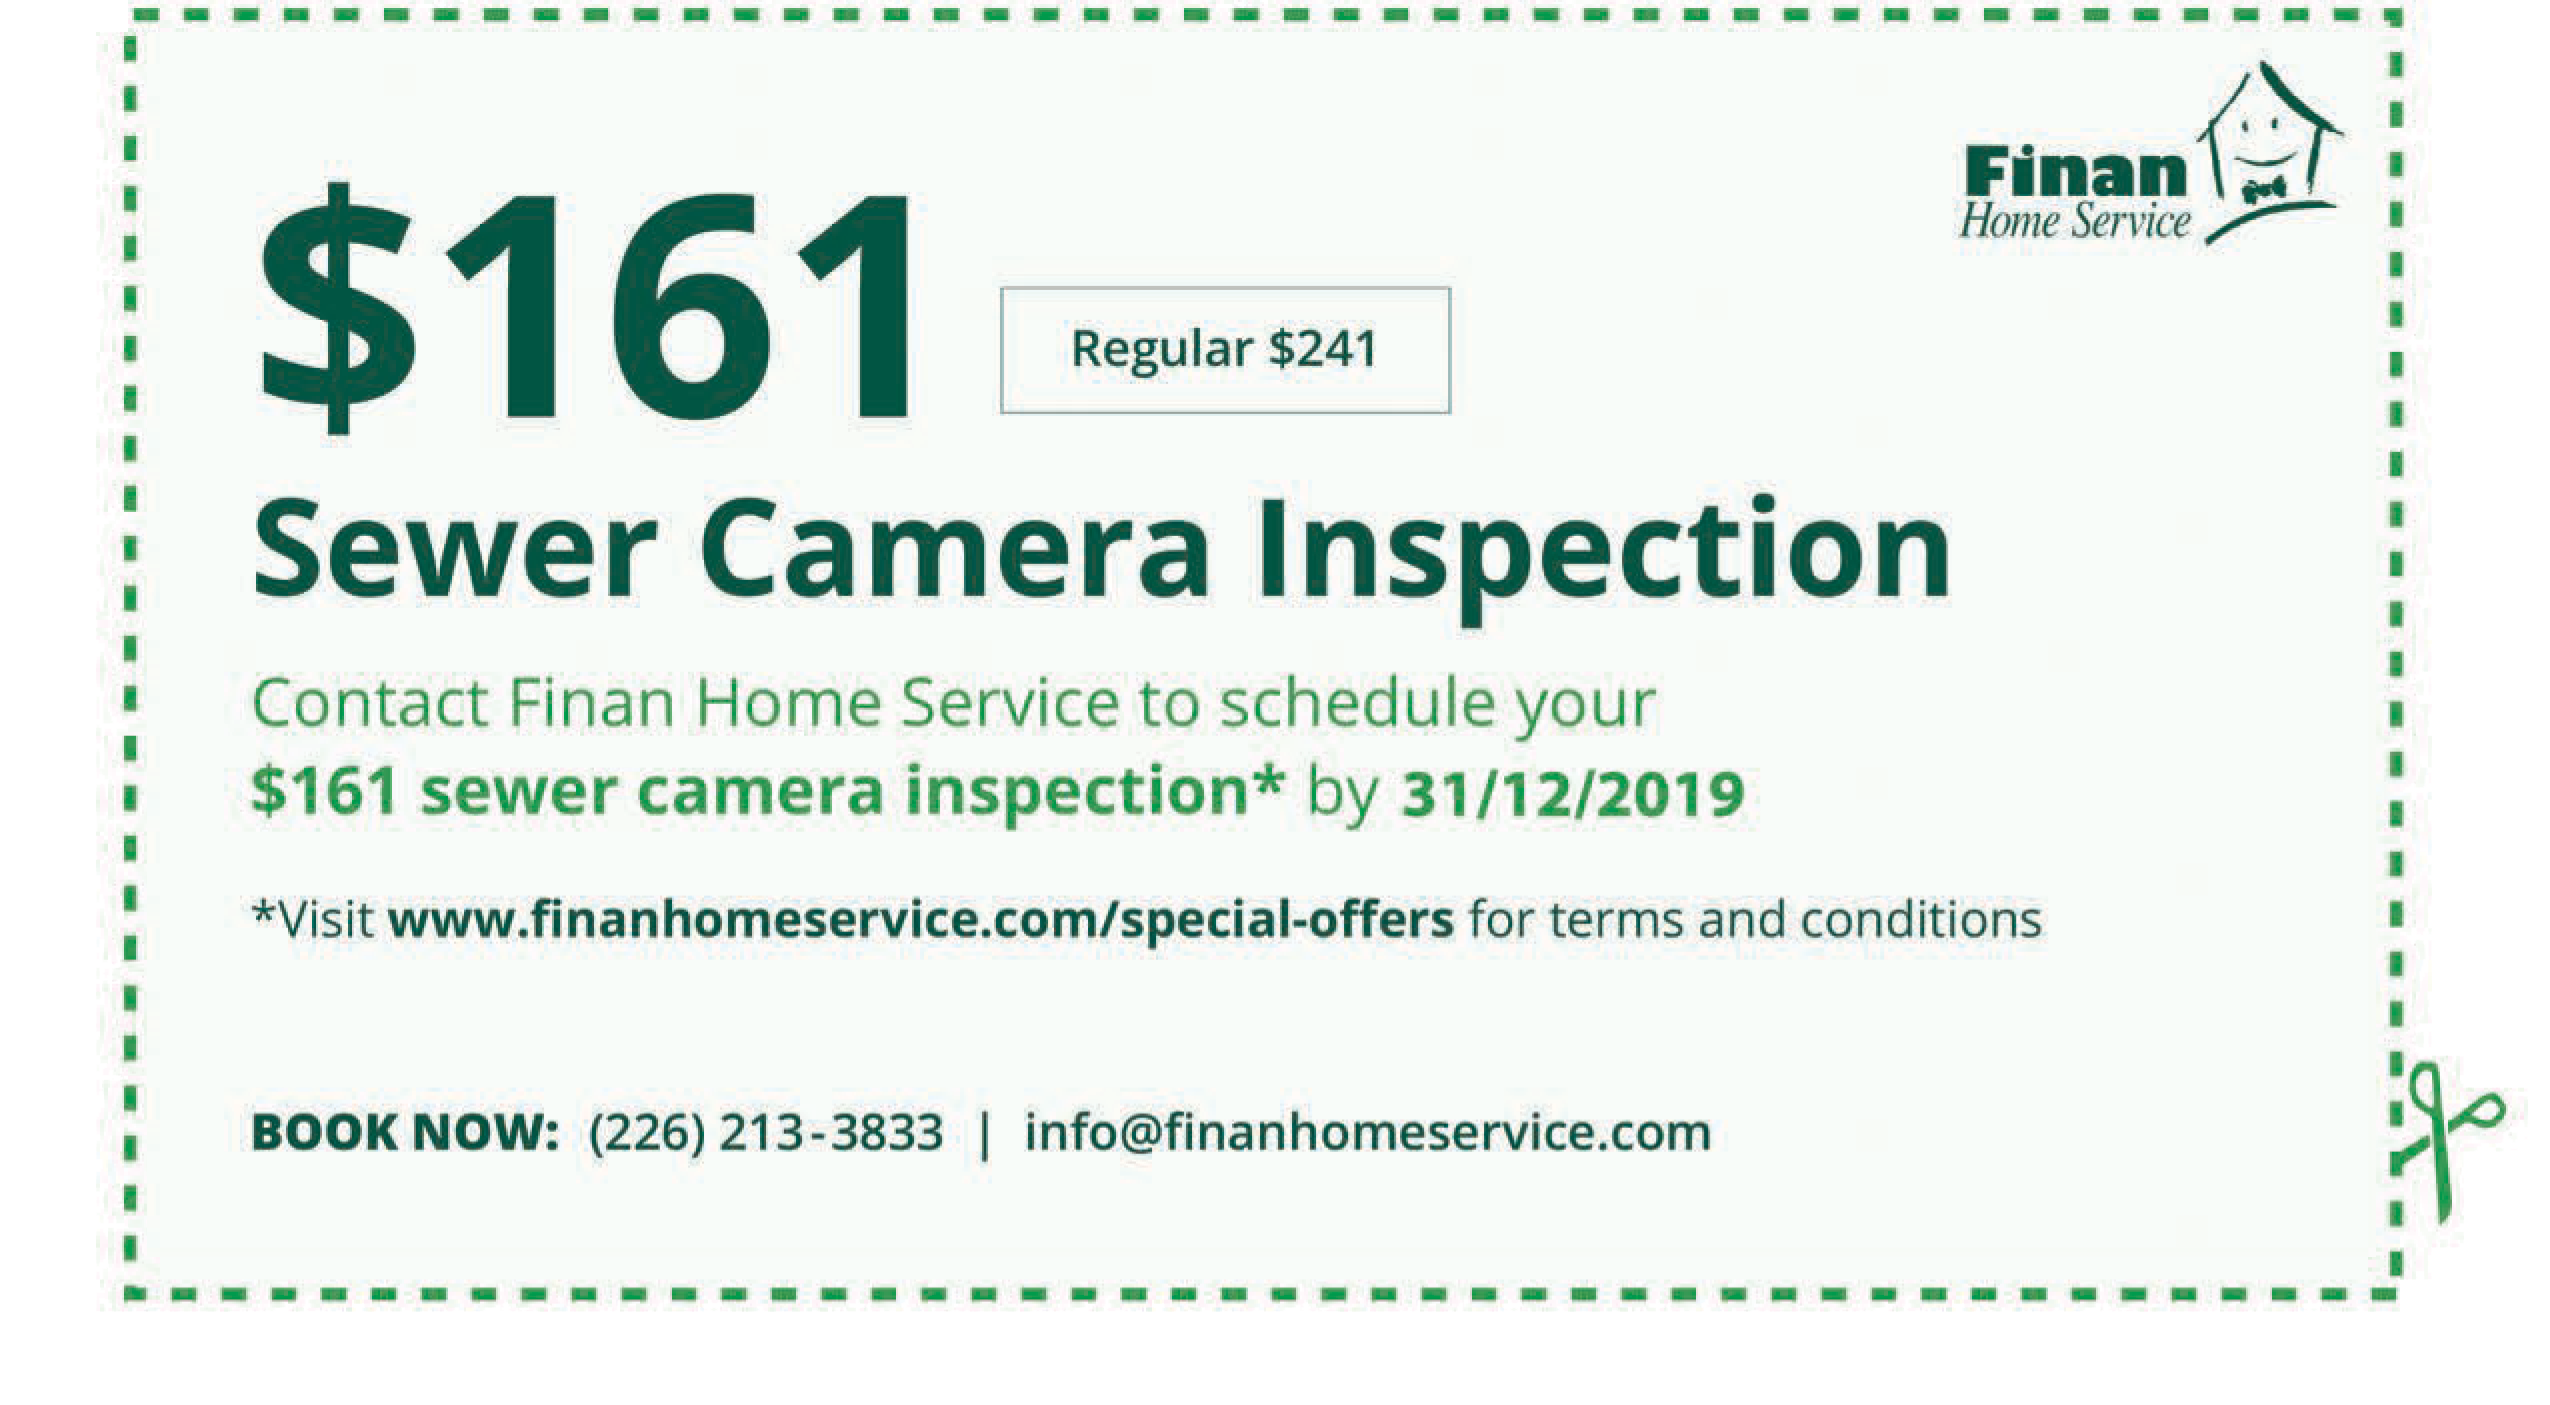 $161 Sewer Camera Inspection